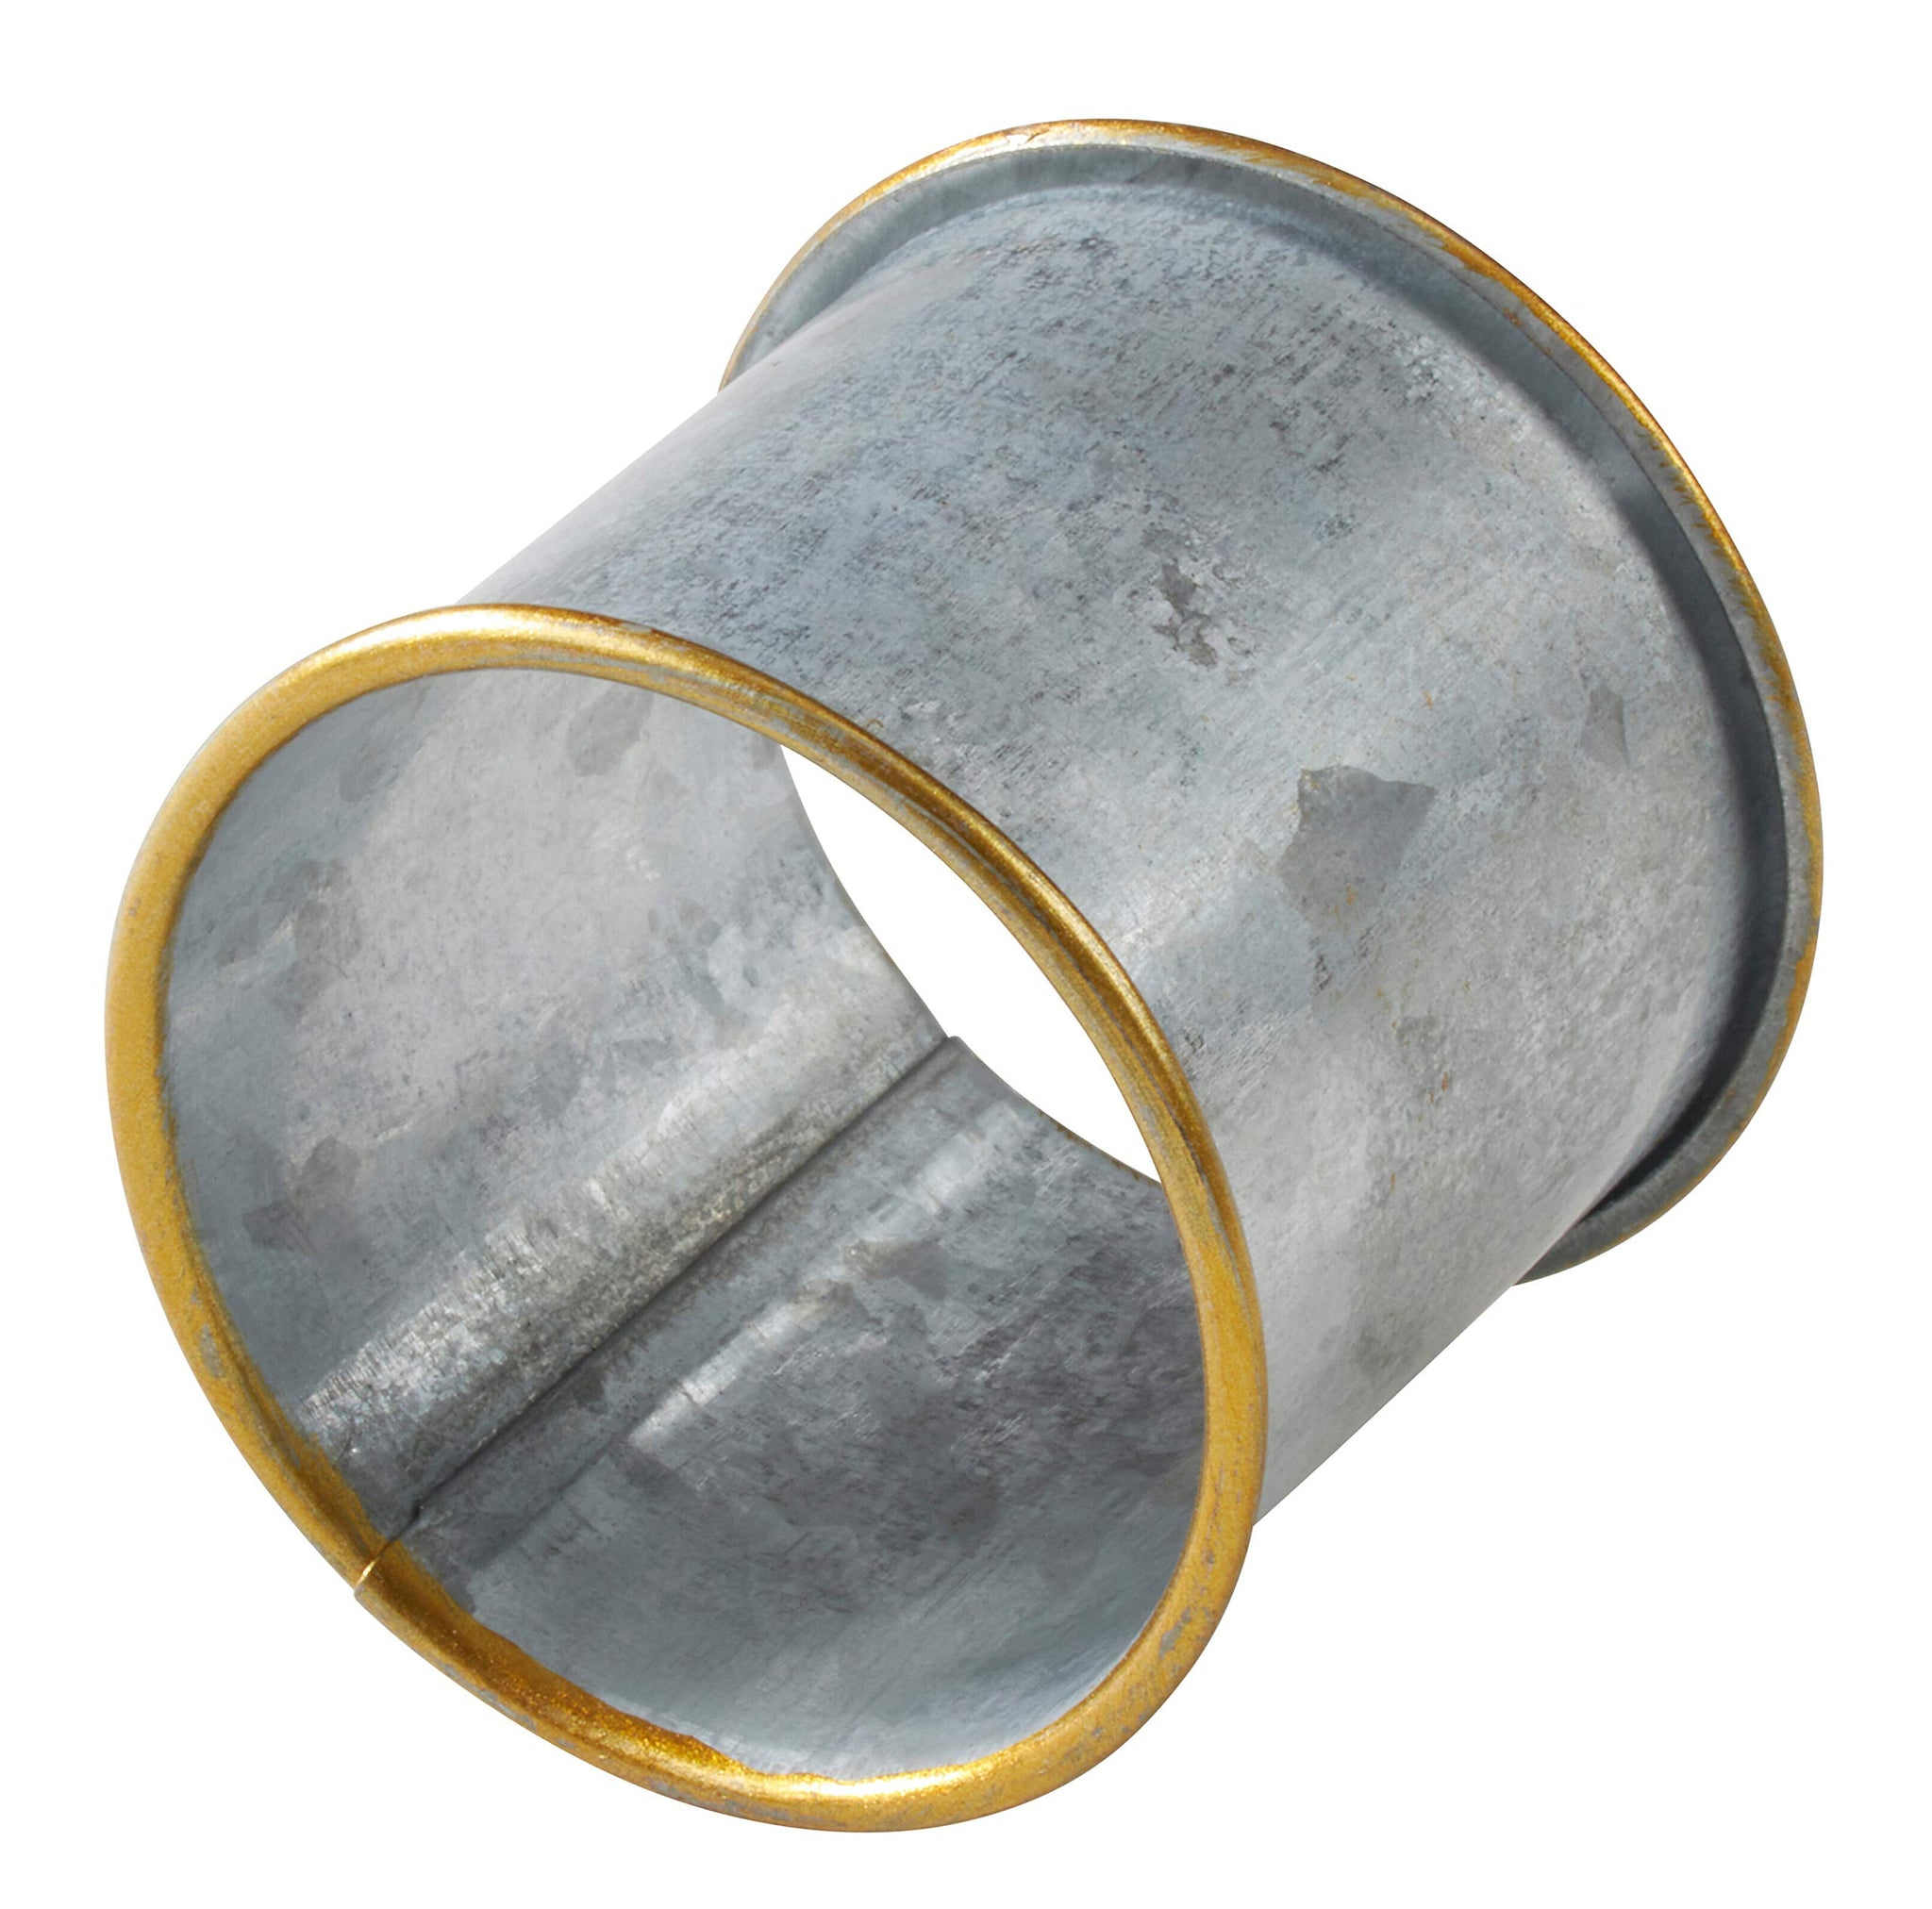 Fennco Styles Sousplat Collection Farmhouse Galvanized Metal Napkin Rings, Set of 4